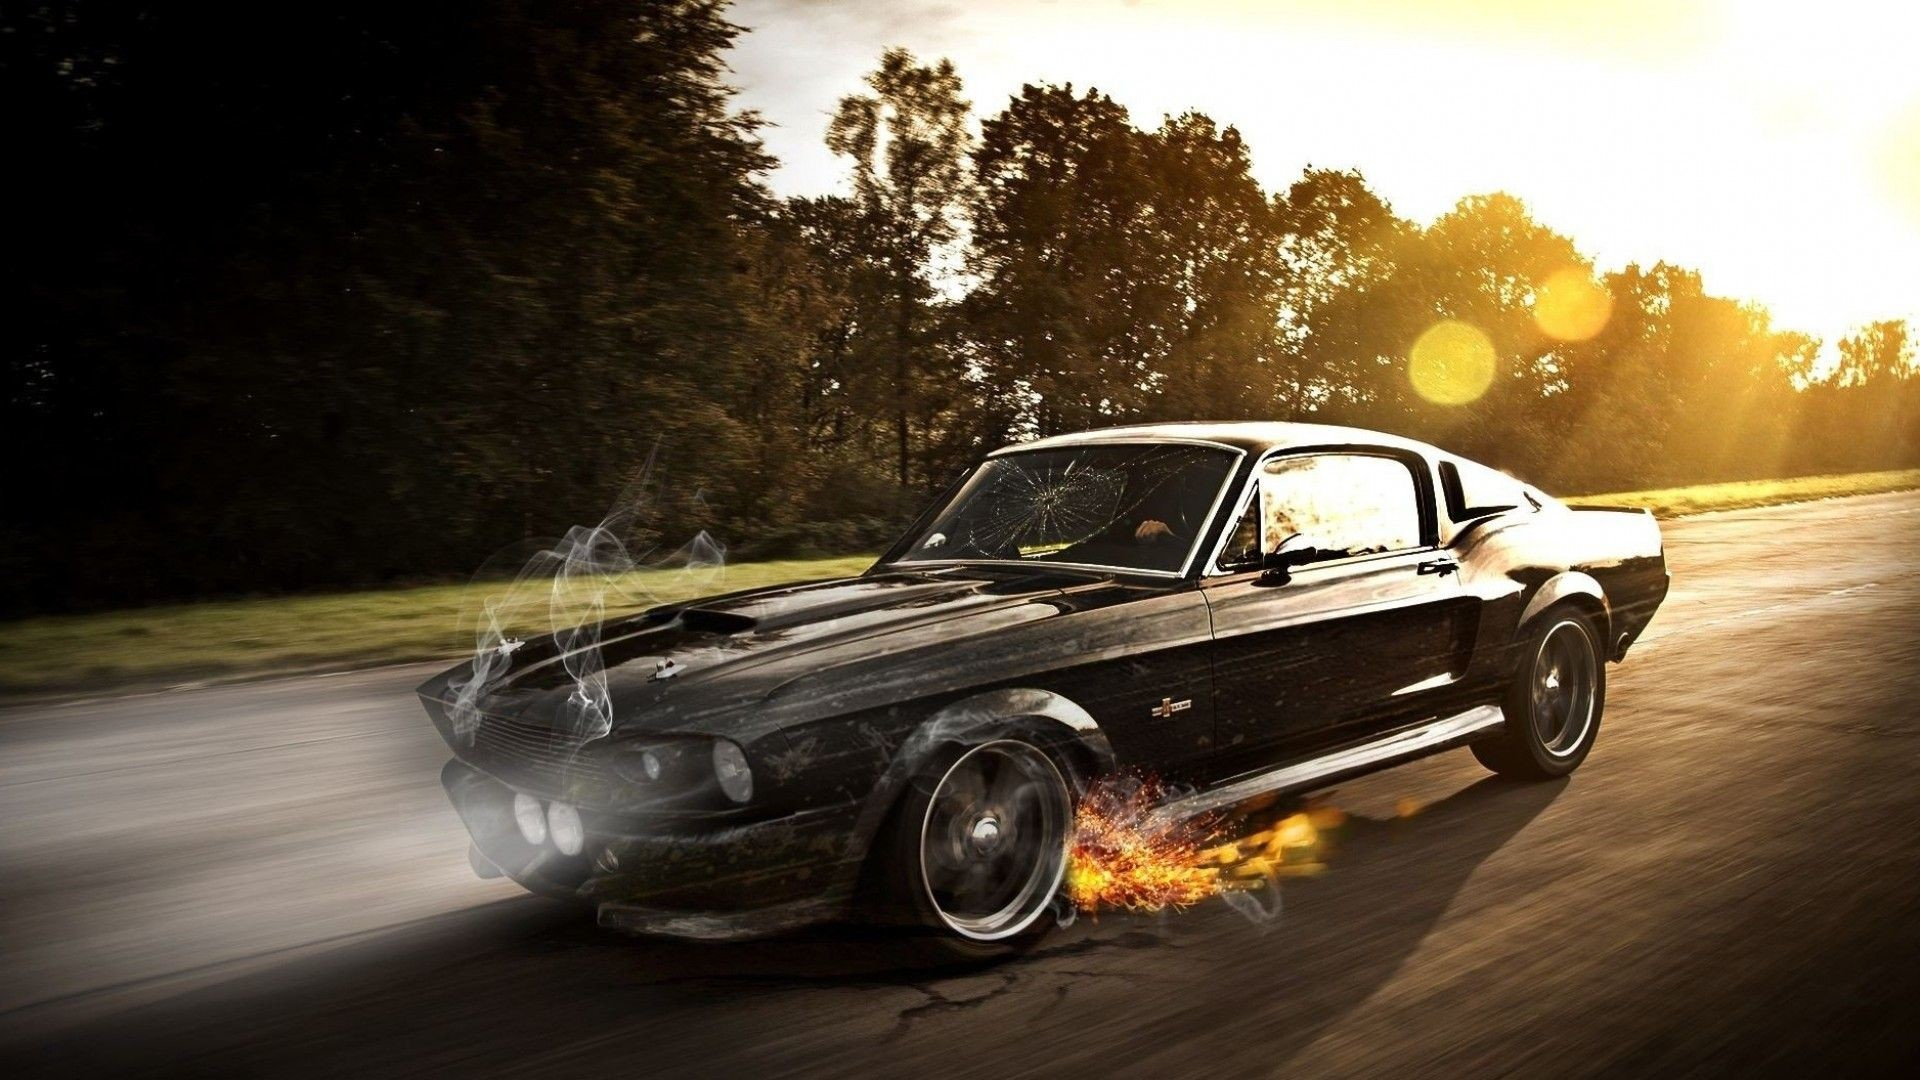 1920x1080 Free Muscle Car Wallpapers   Wallpaper Cave